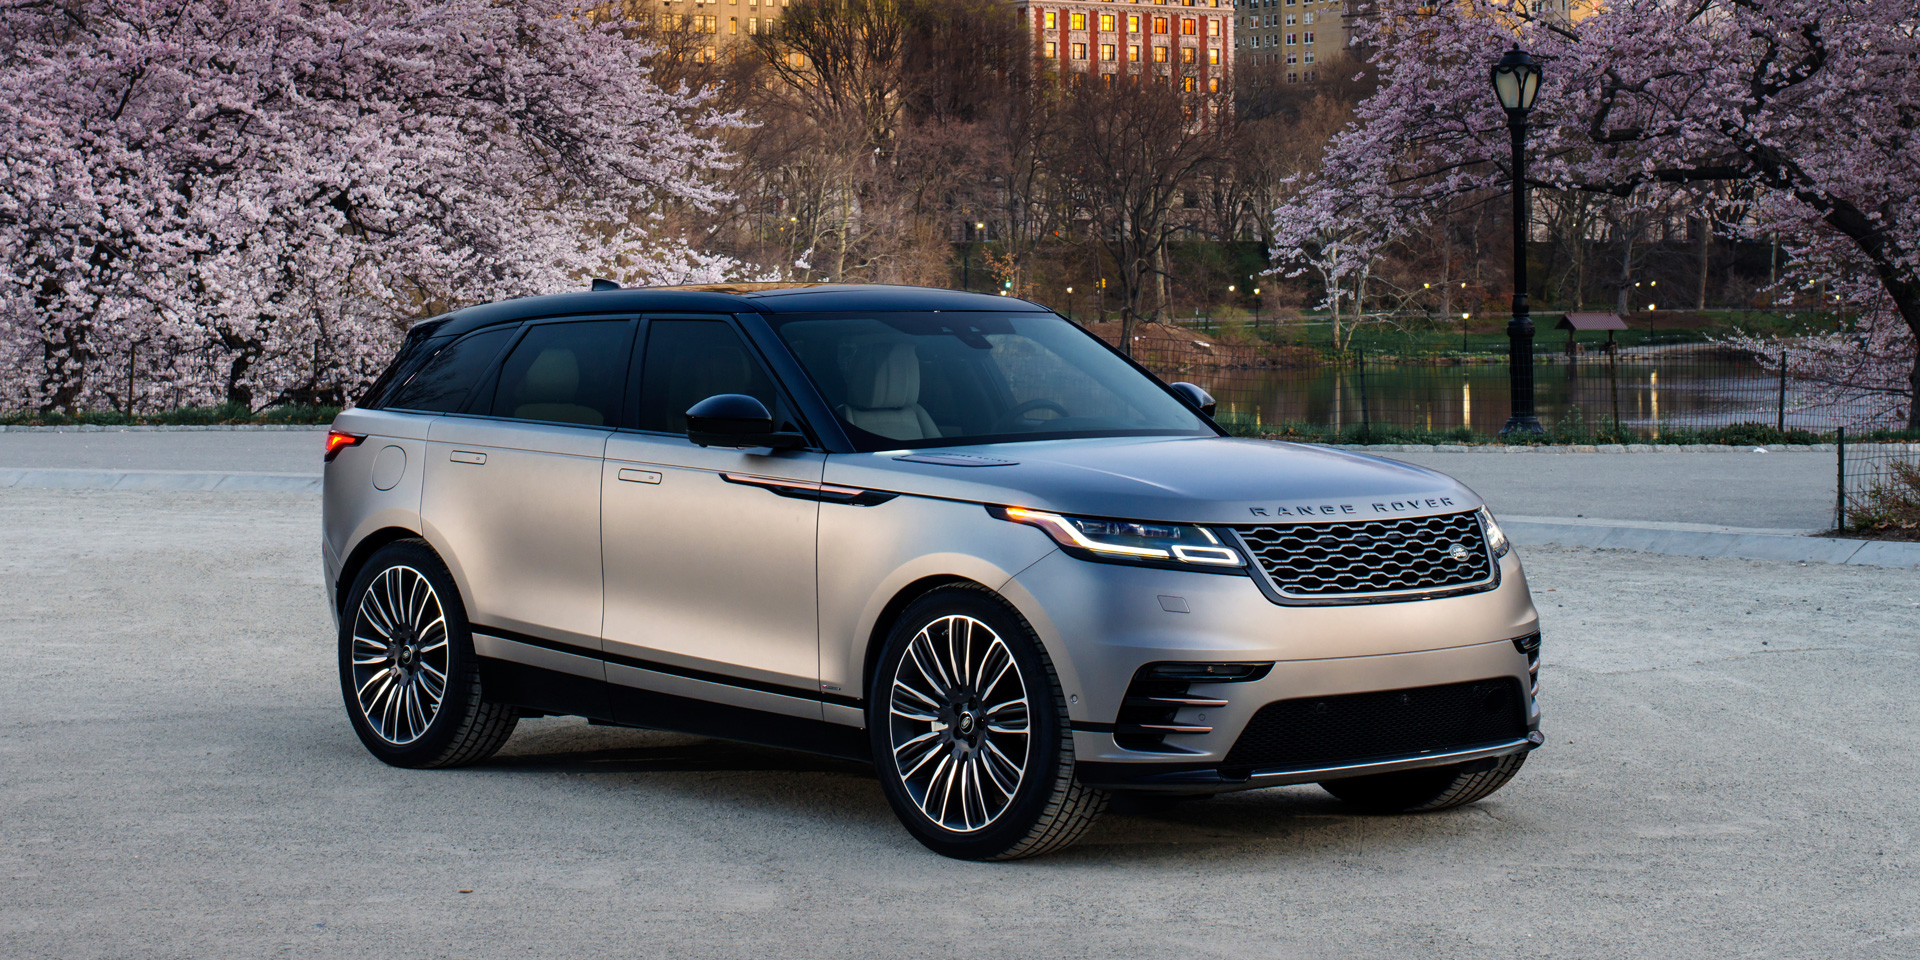 2018 land rover range rover velar vehicles on display chicago auto show. Black Bedroom Furniture Sets. Home Design Ideas